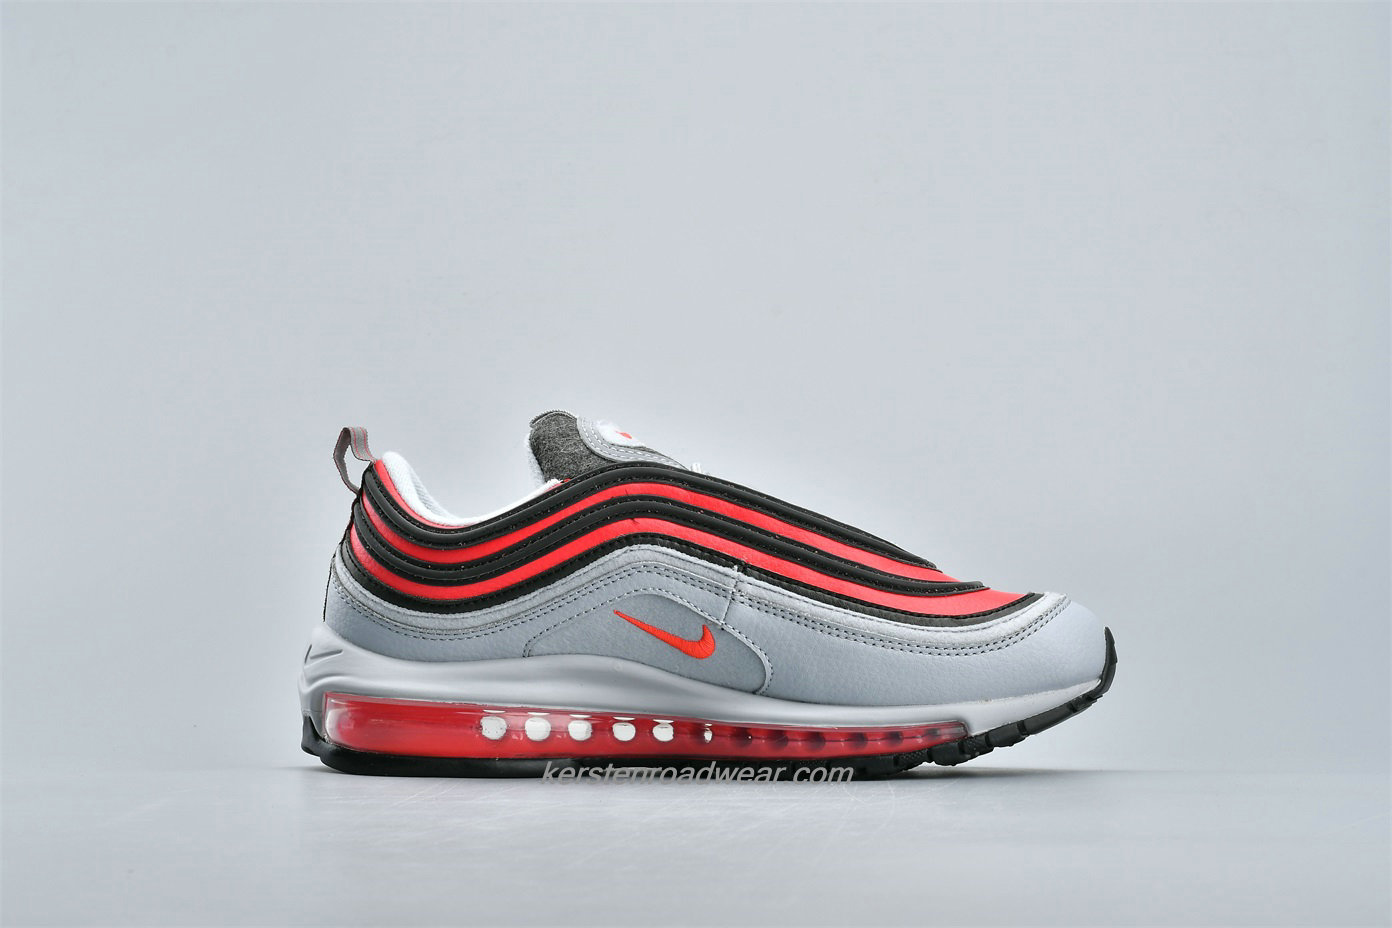 Nike Air Max 97 FELT CD4831 002 Unisex Grey / Black / Red Shoes